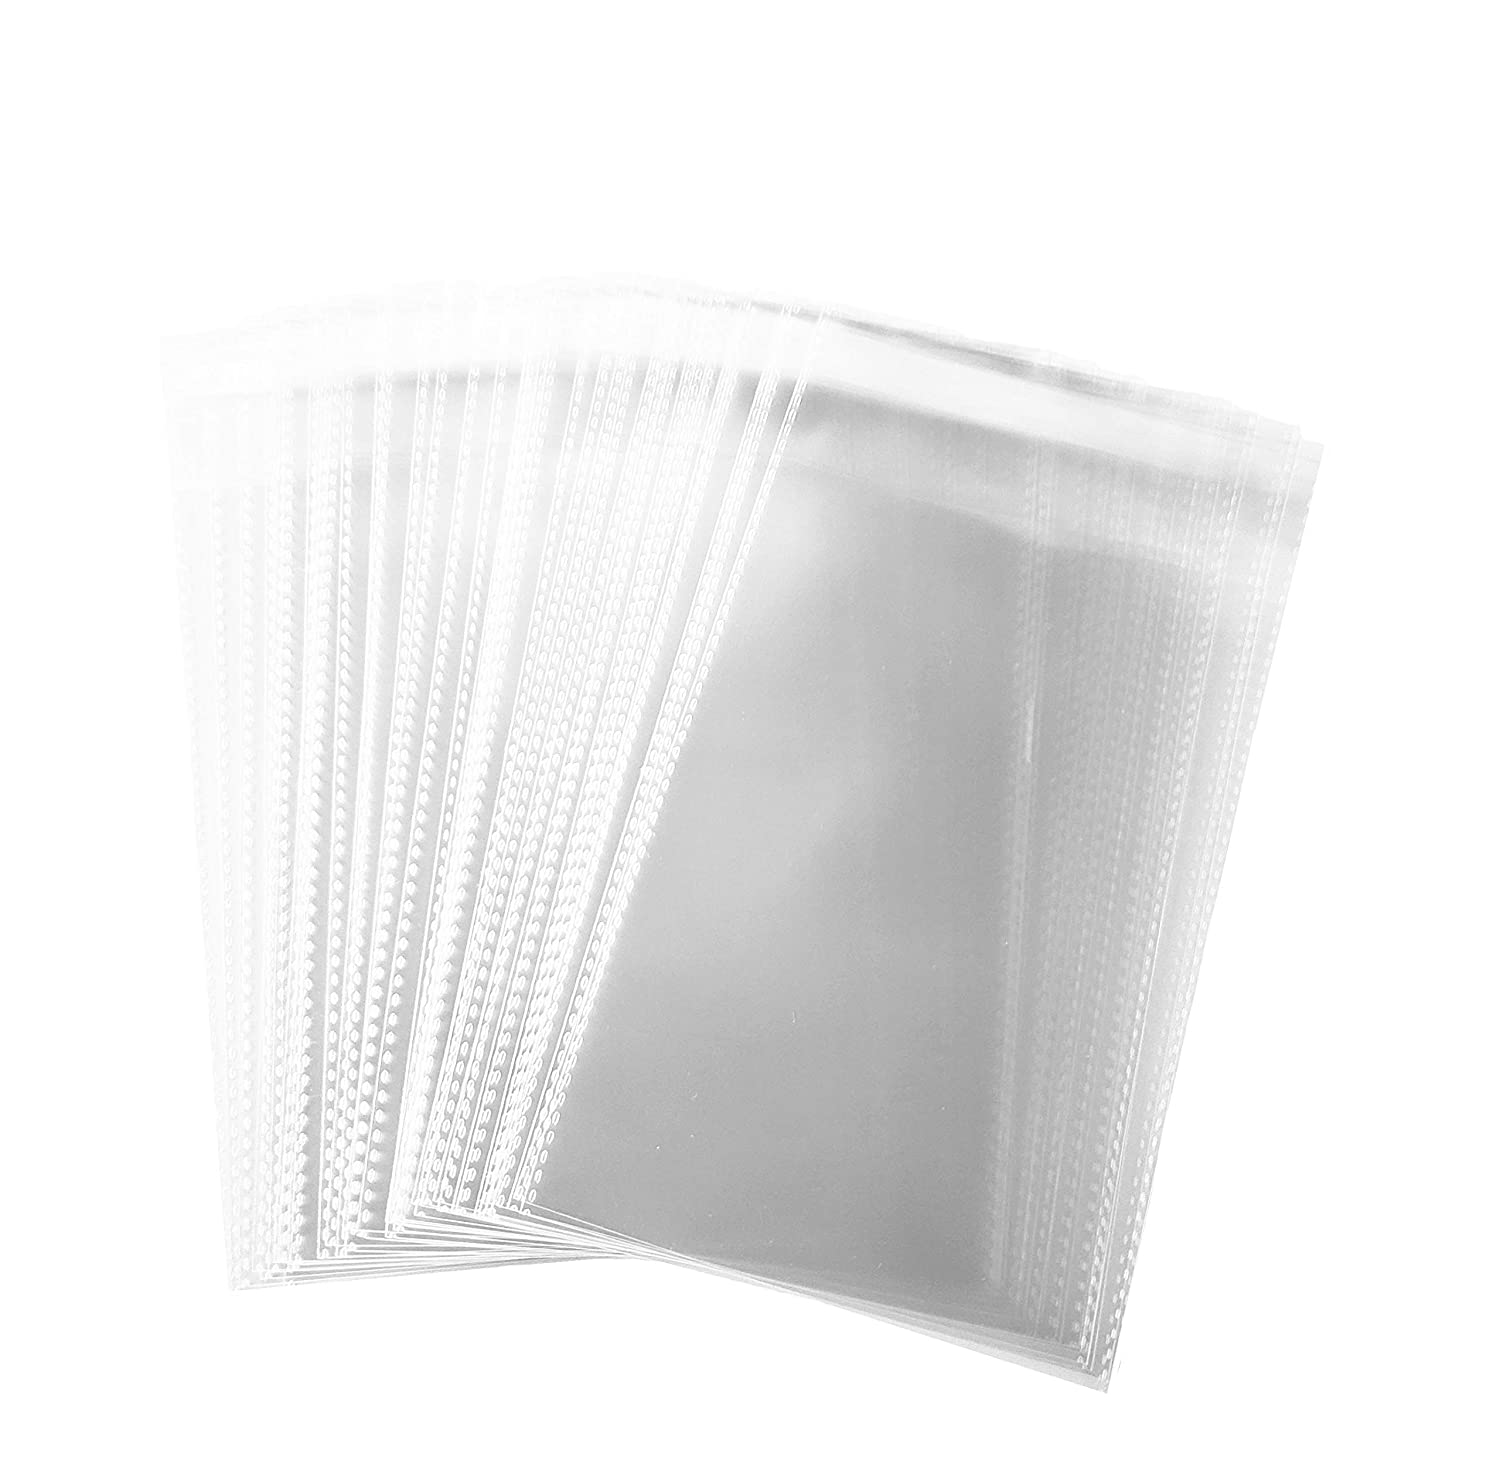 200 pcs Clear Flat Resealable Cello/ 2 MIL Cellophane Bags (8' x 10') FlanicaUSA